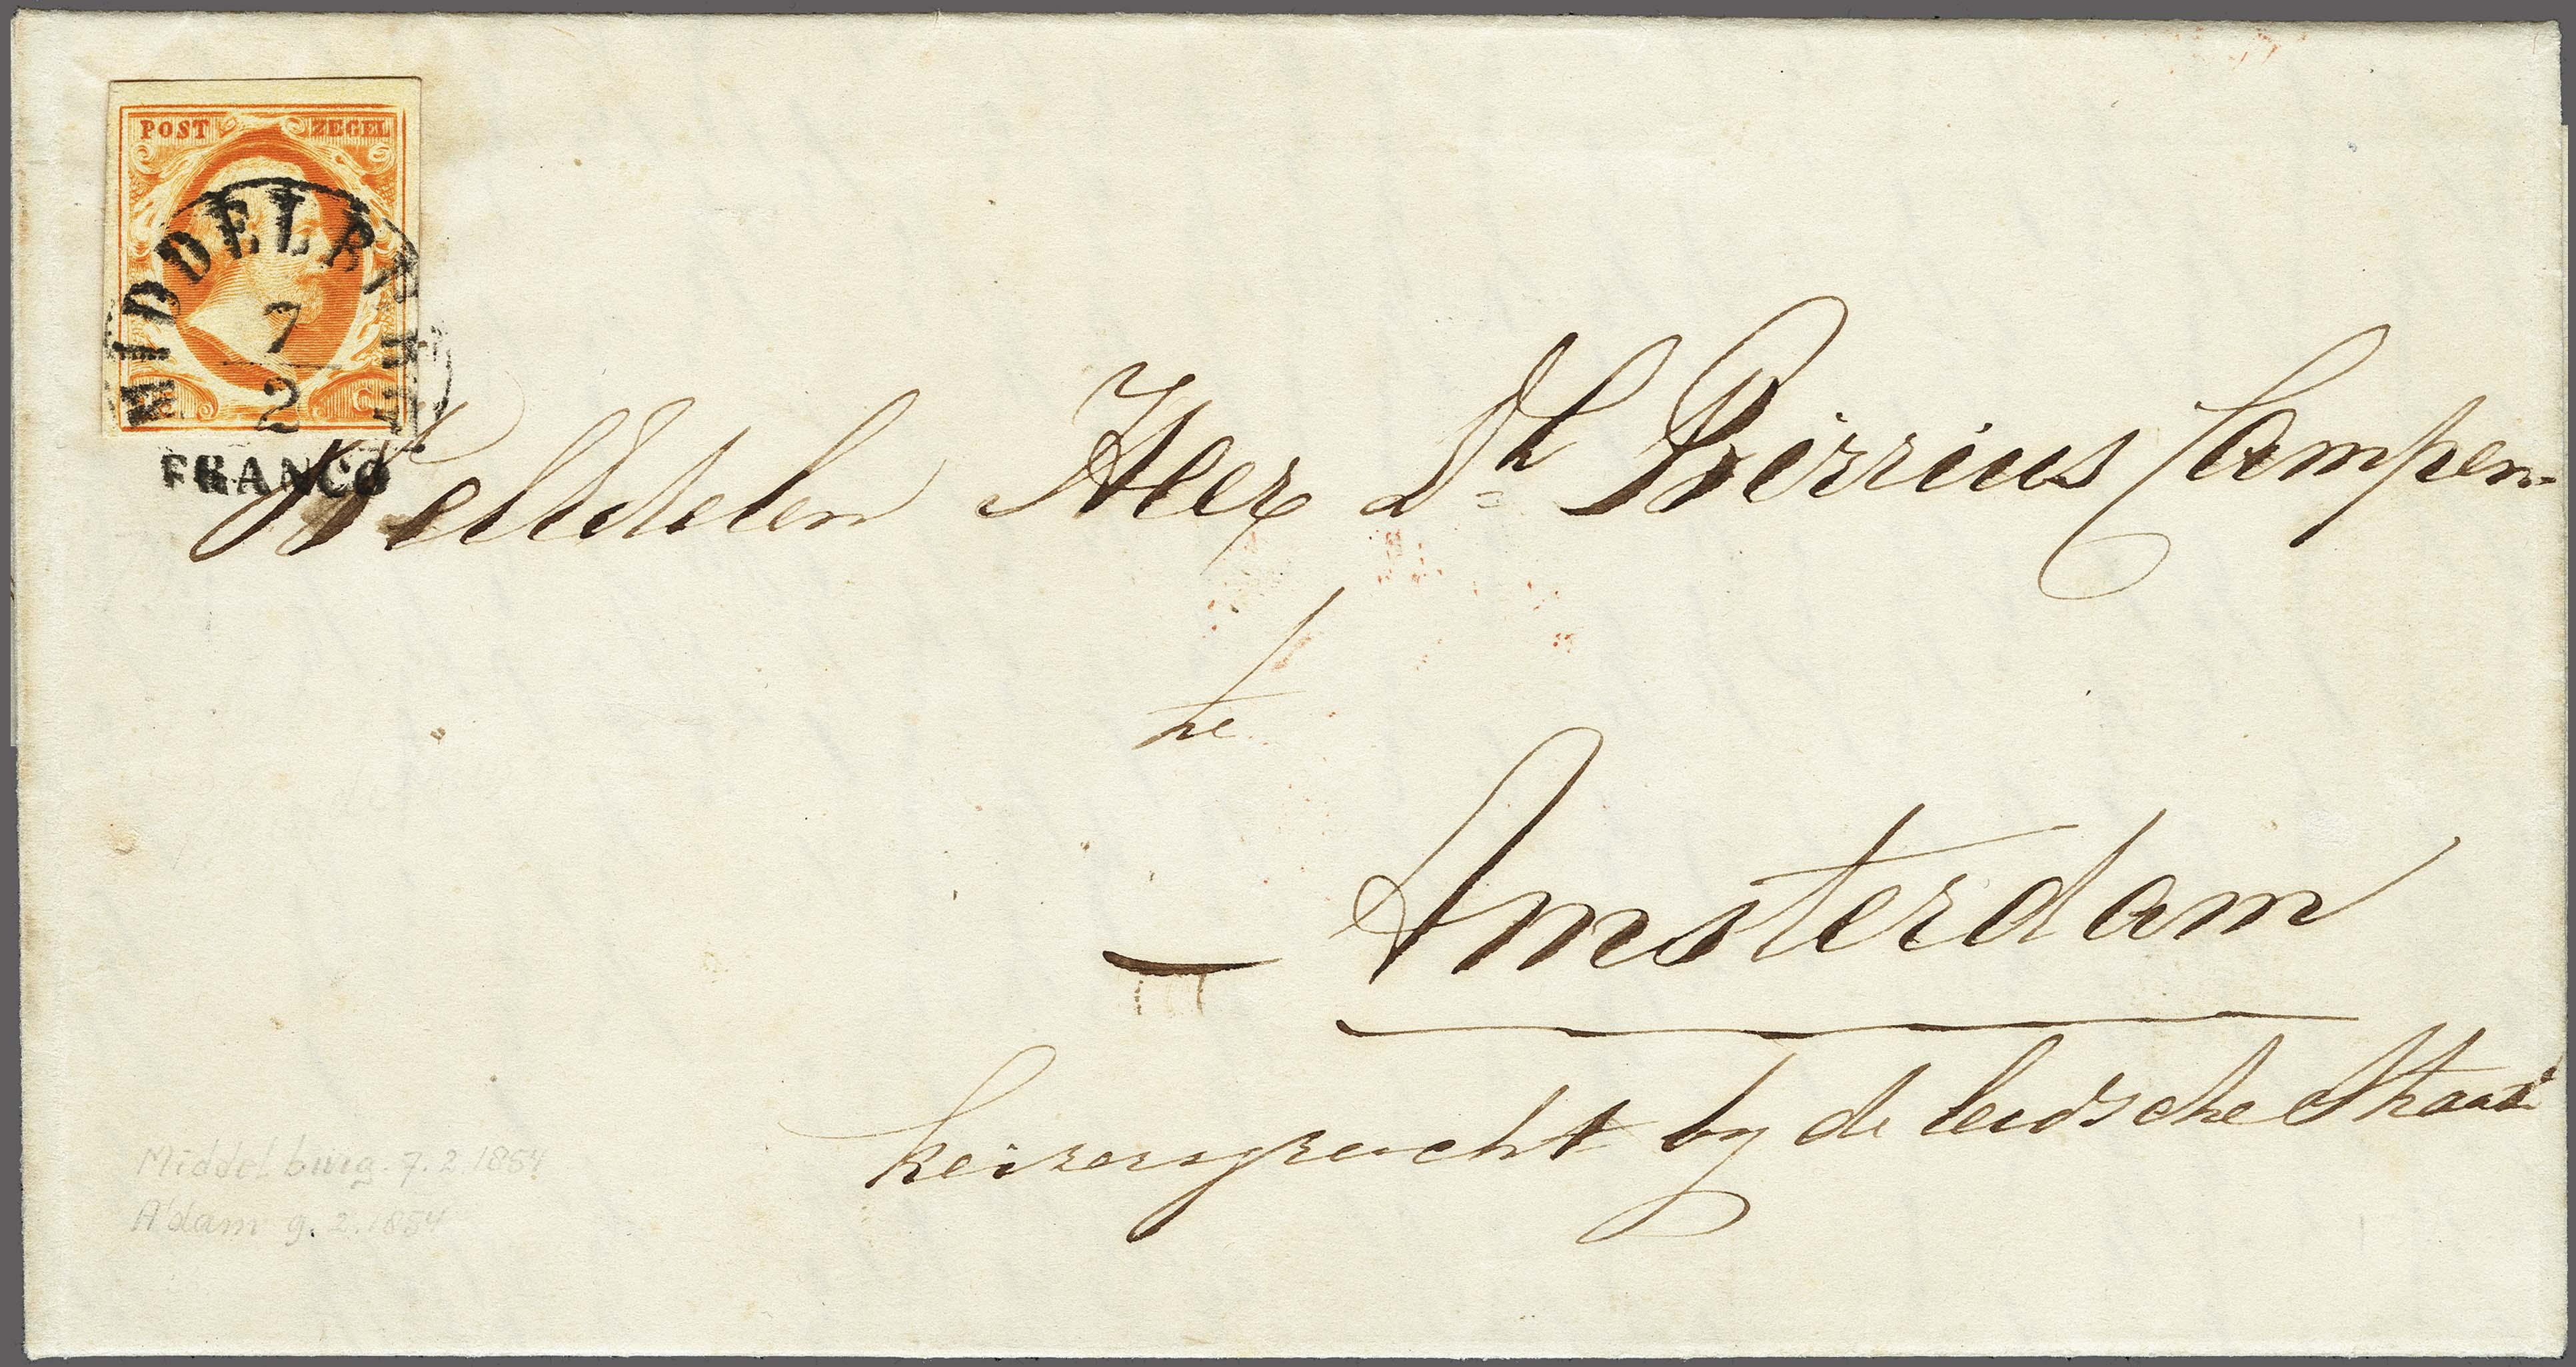 Lot 2515 - Netherlands and former colonies NL Semi-circular Cancellation -  Corinphila Veilingen Auction 250-253 - Day 3 - Netherlands and former colonies - Single lots & Picture postcards